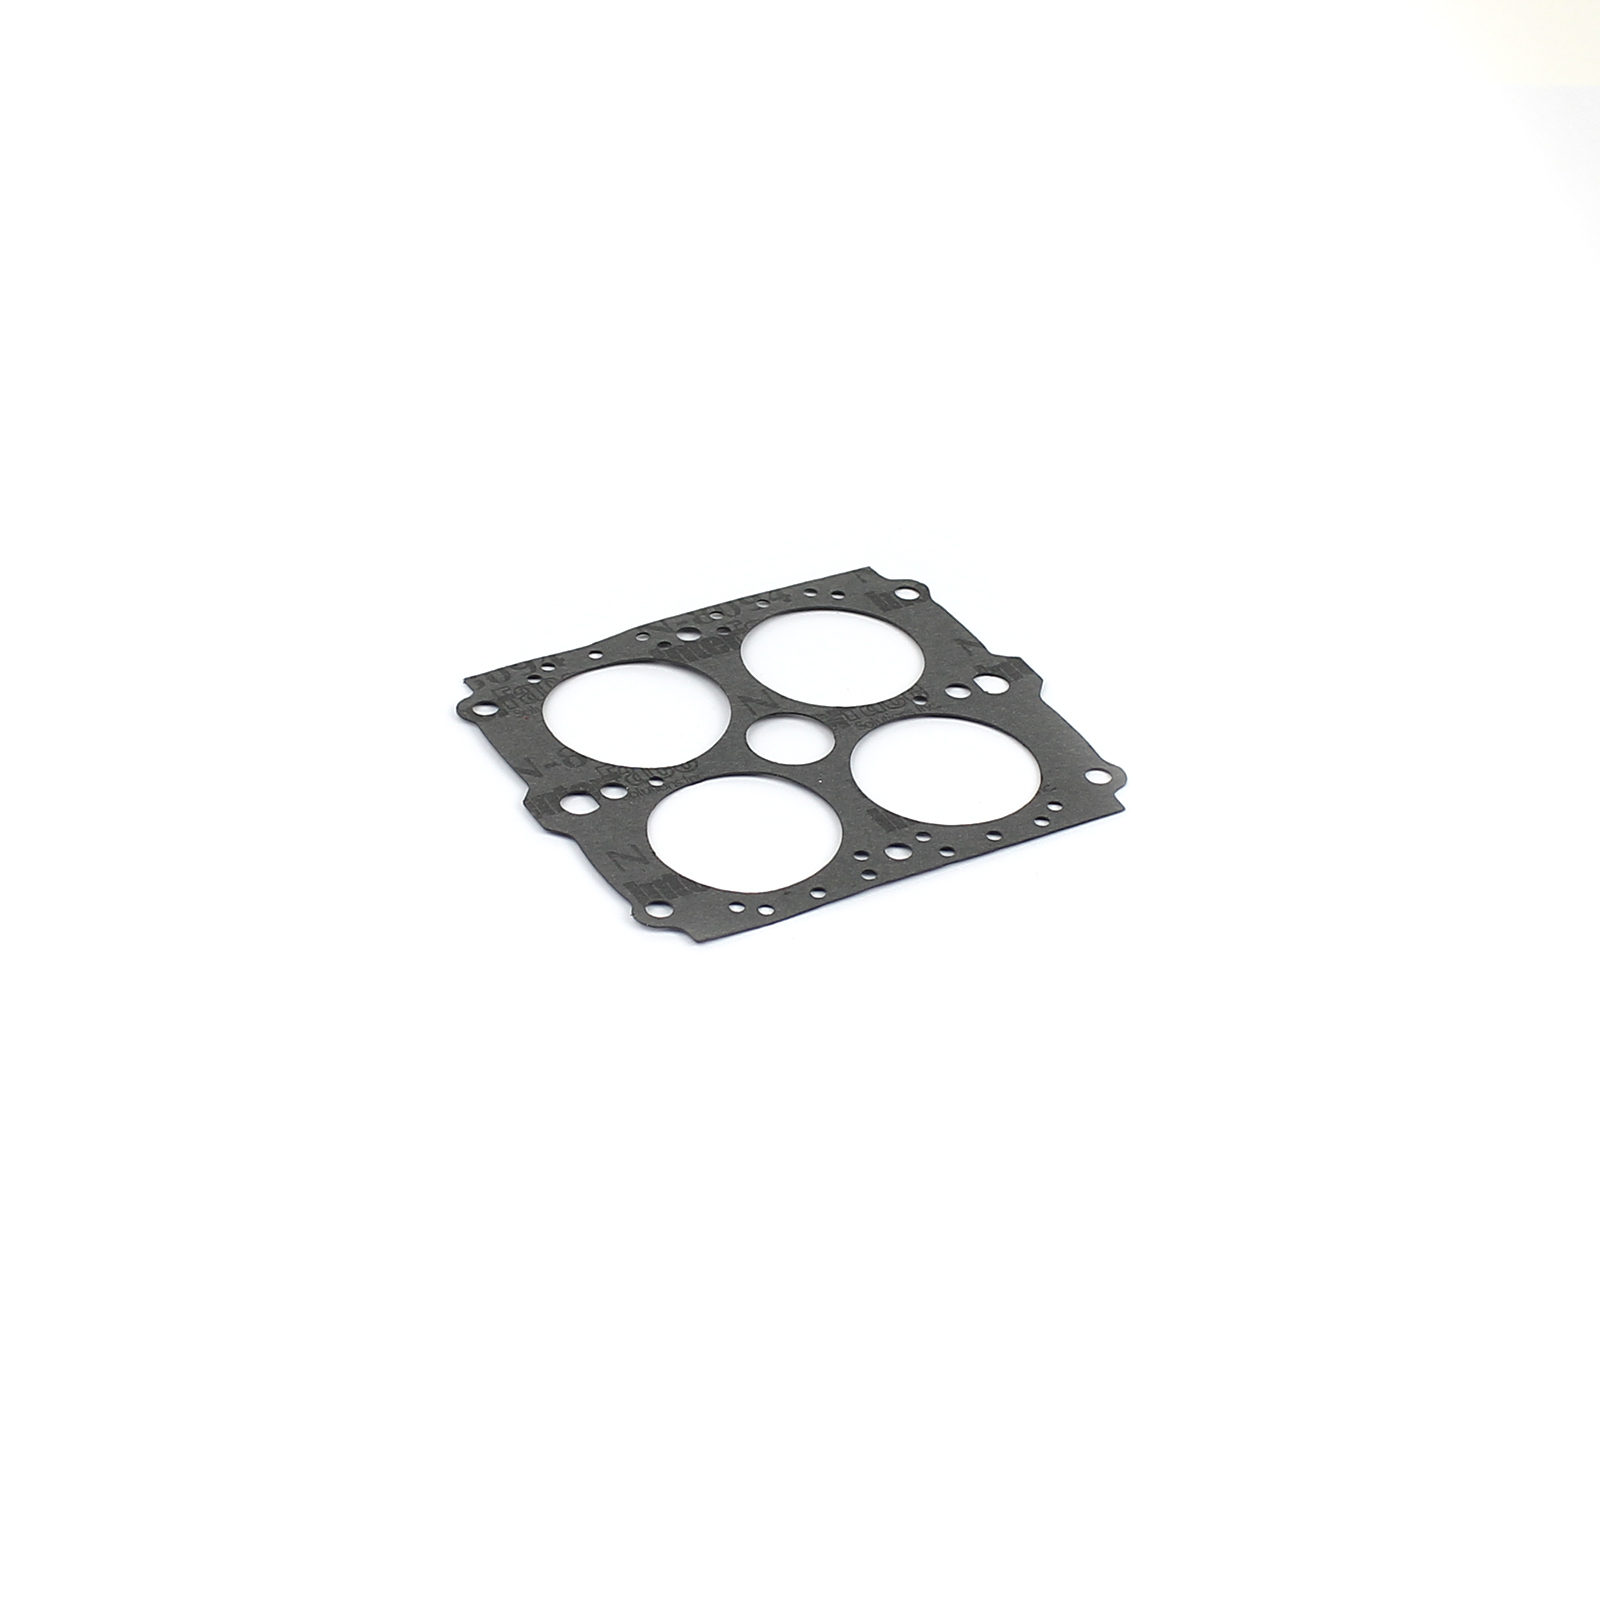 Main Body Base Carburetor Gasket (Suits PCE116.1005)